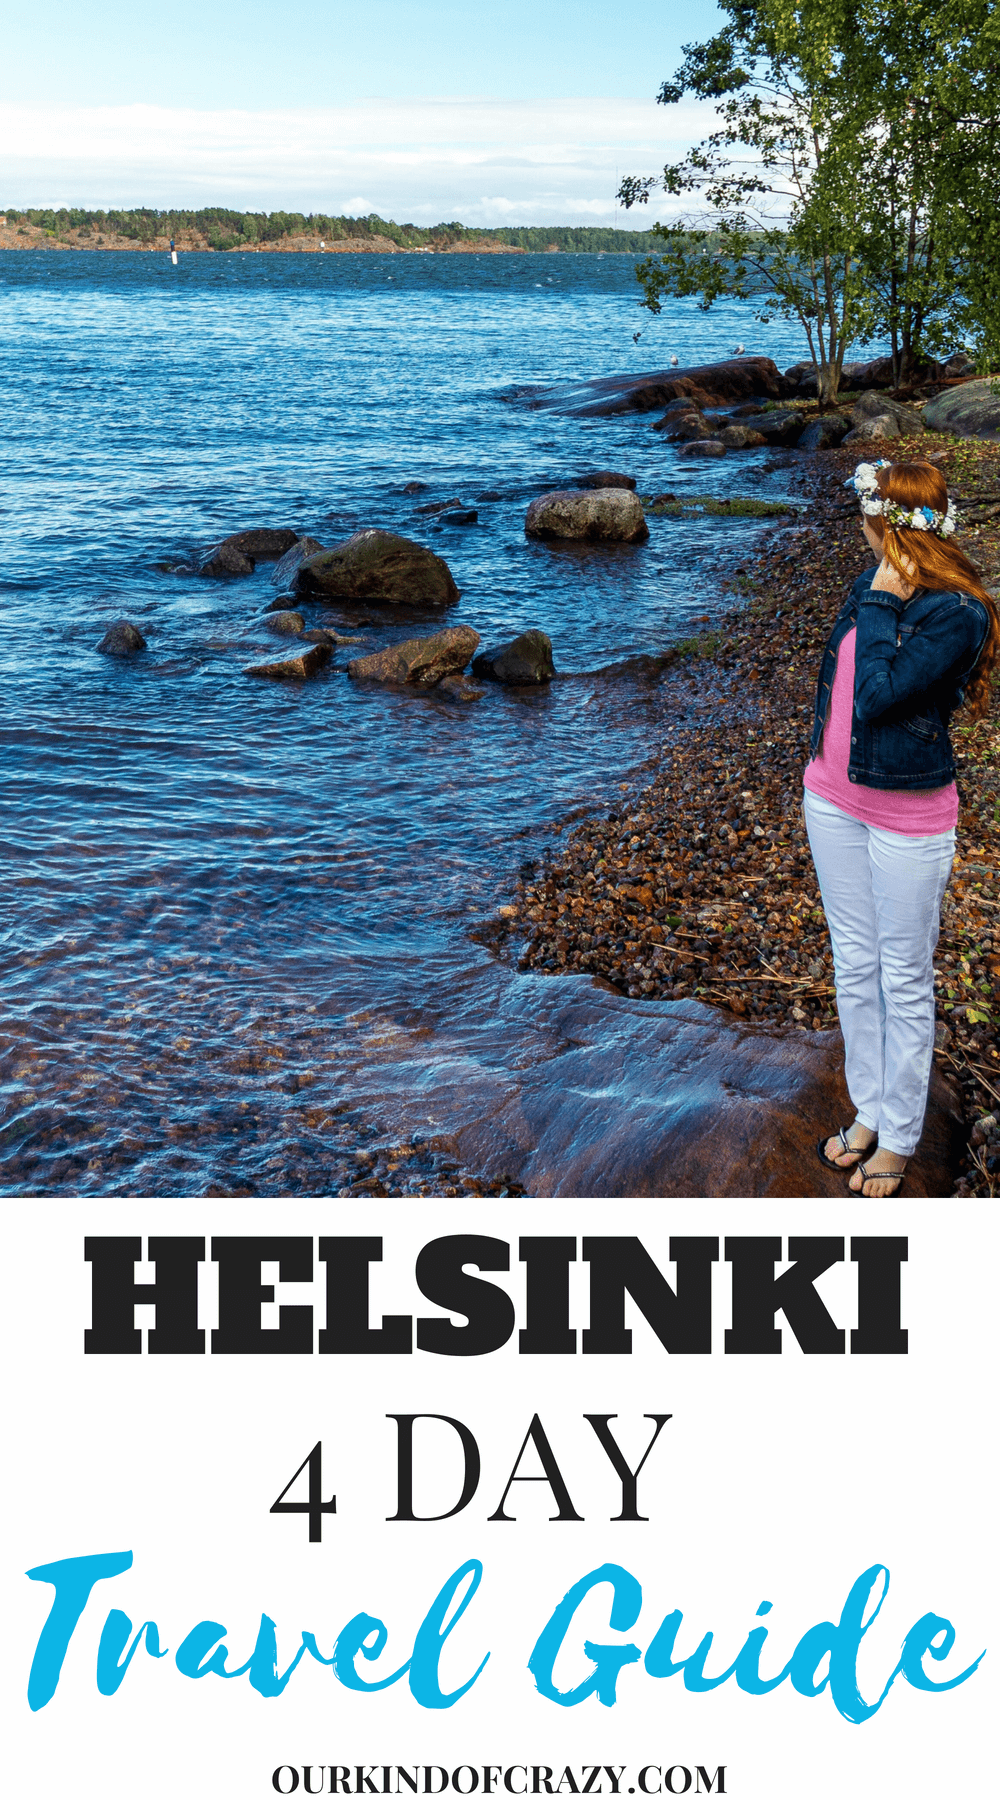 Things to do in Helsinki, Finland. Helsinki Travel Guide and itinerary.